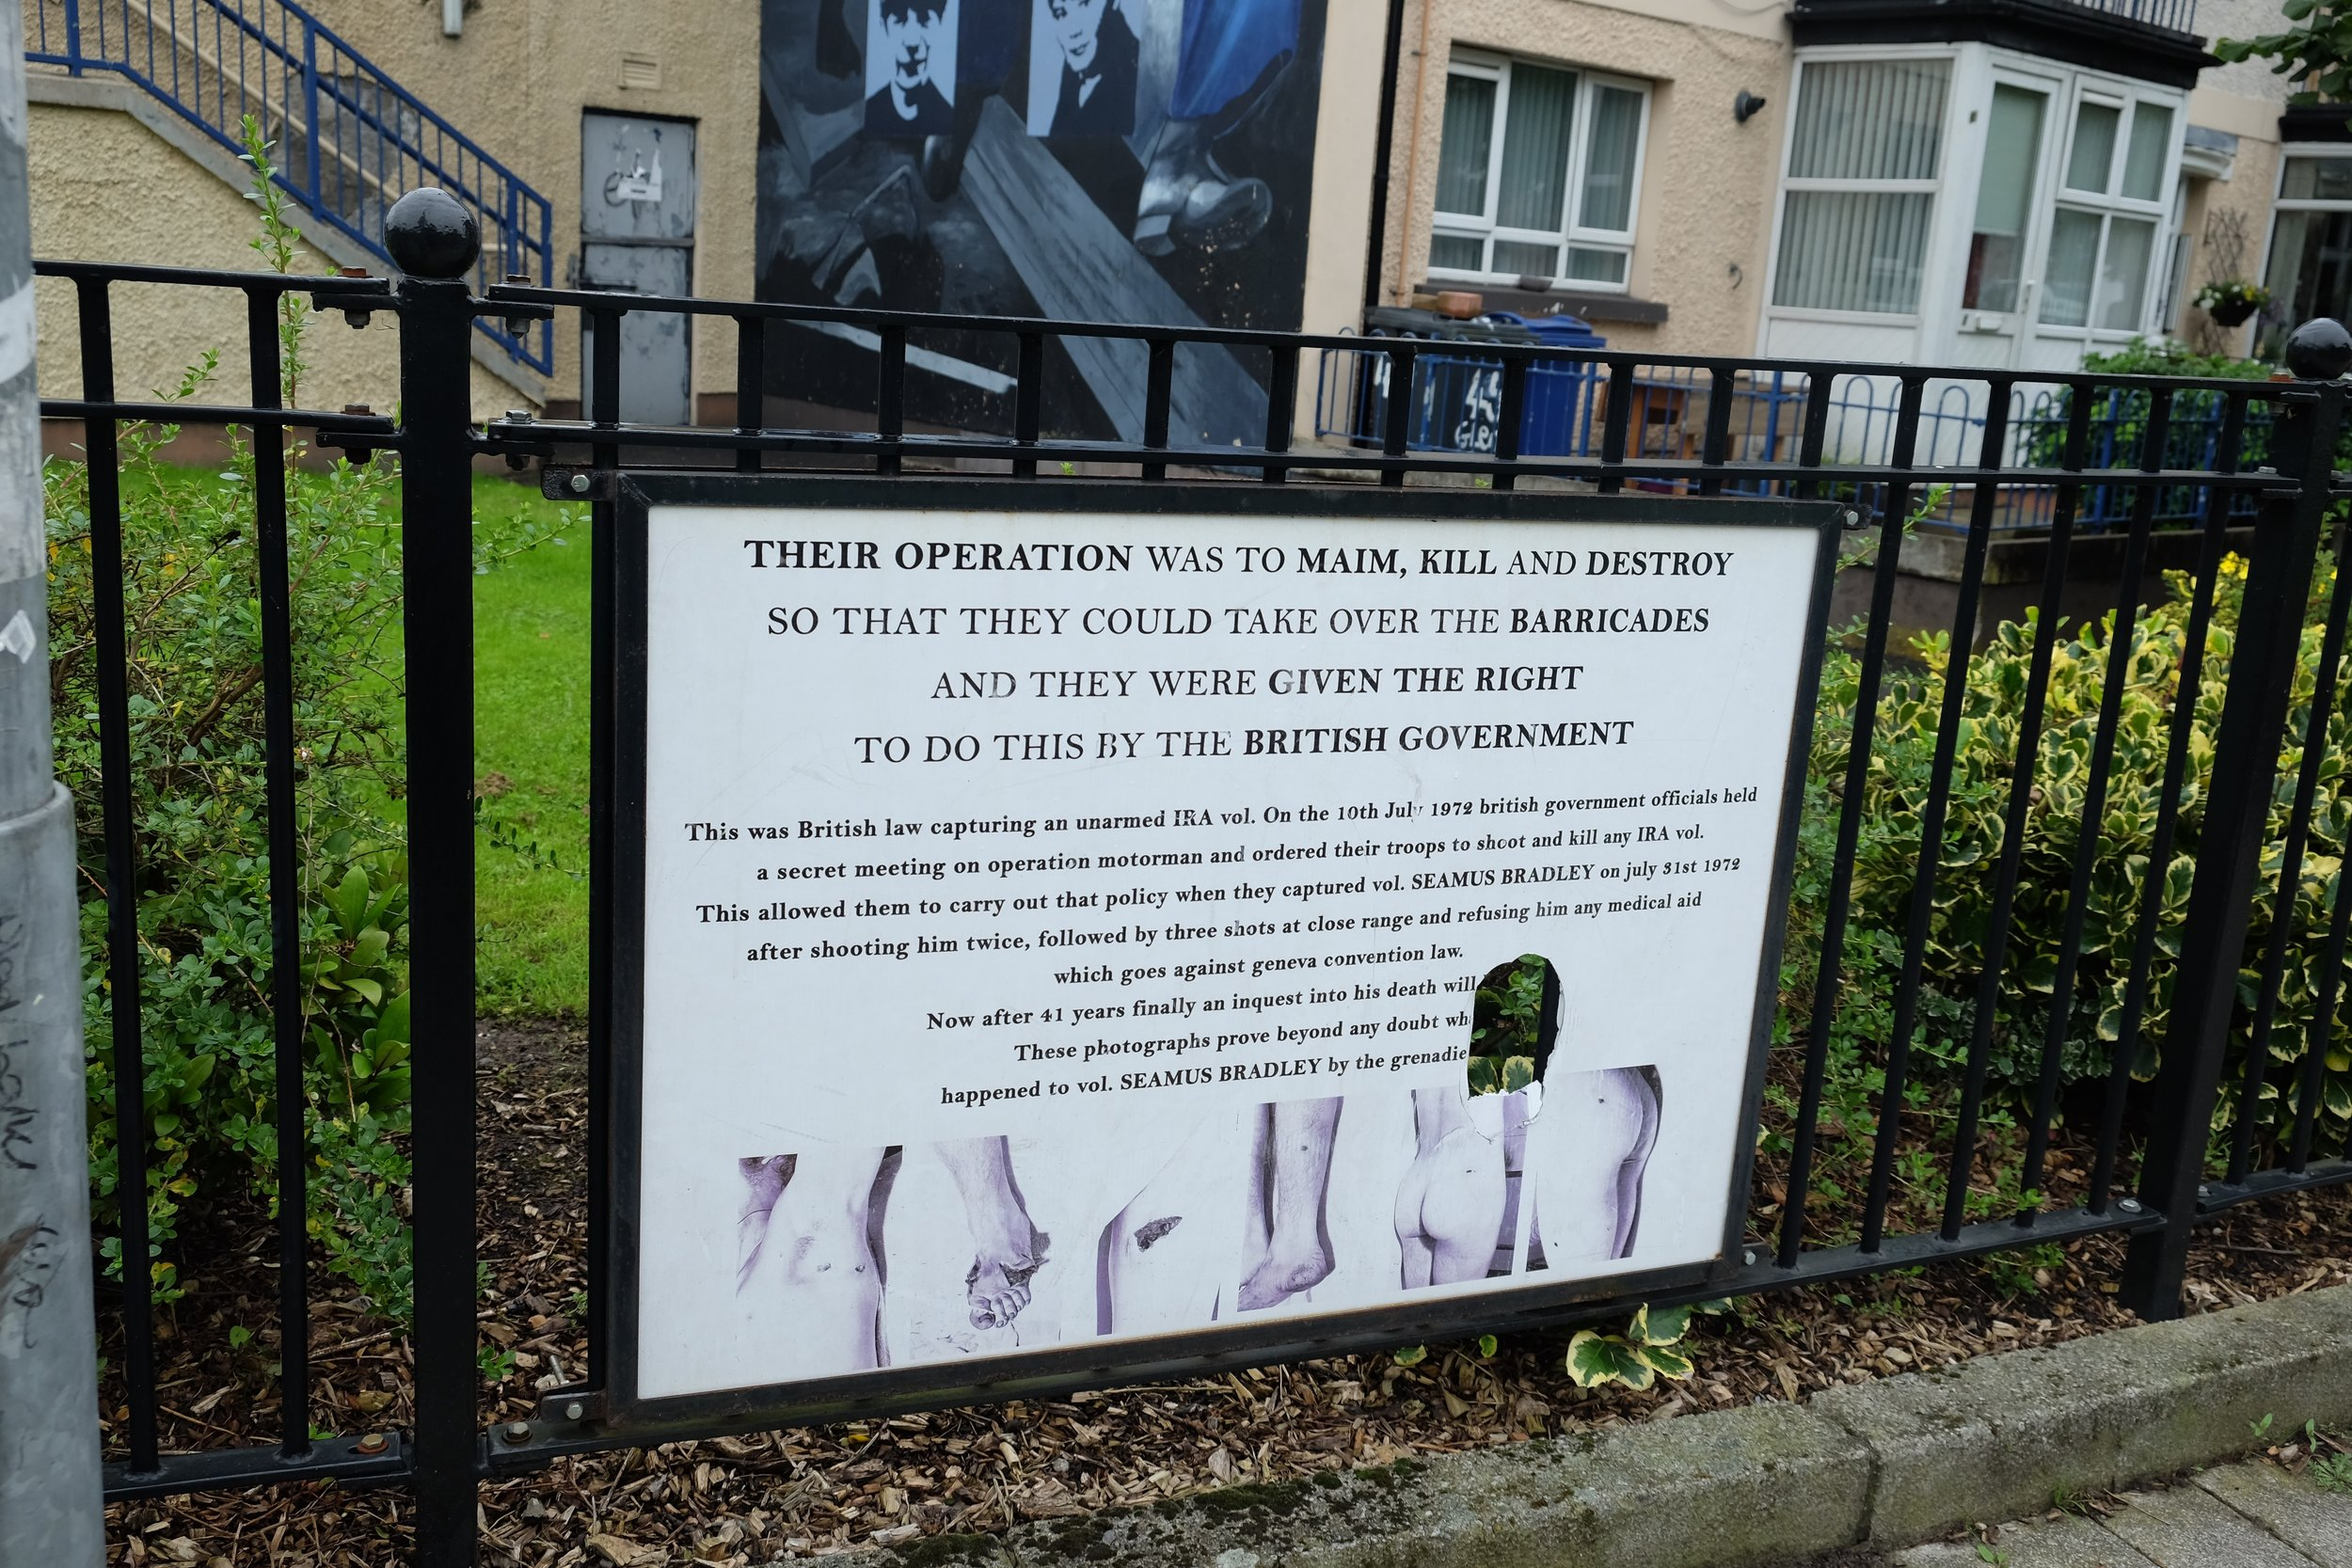 It was rumoured that the police had been the ones who had desecrated this memorial.